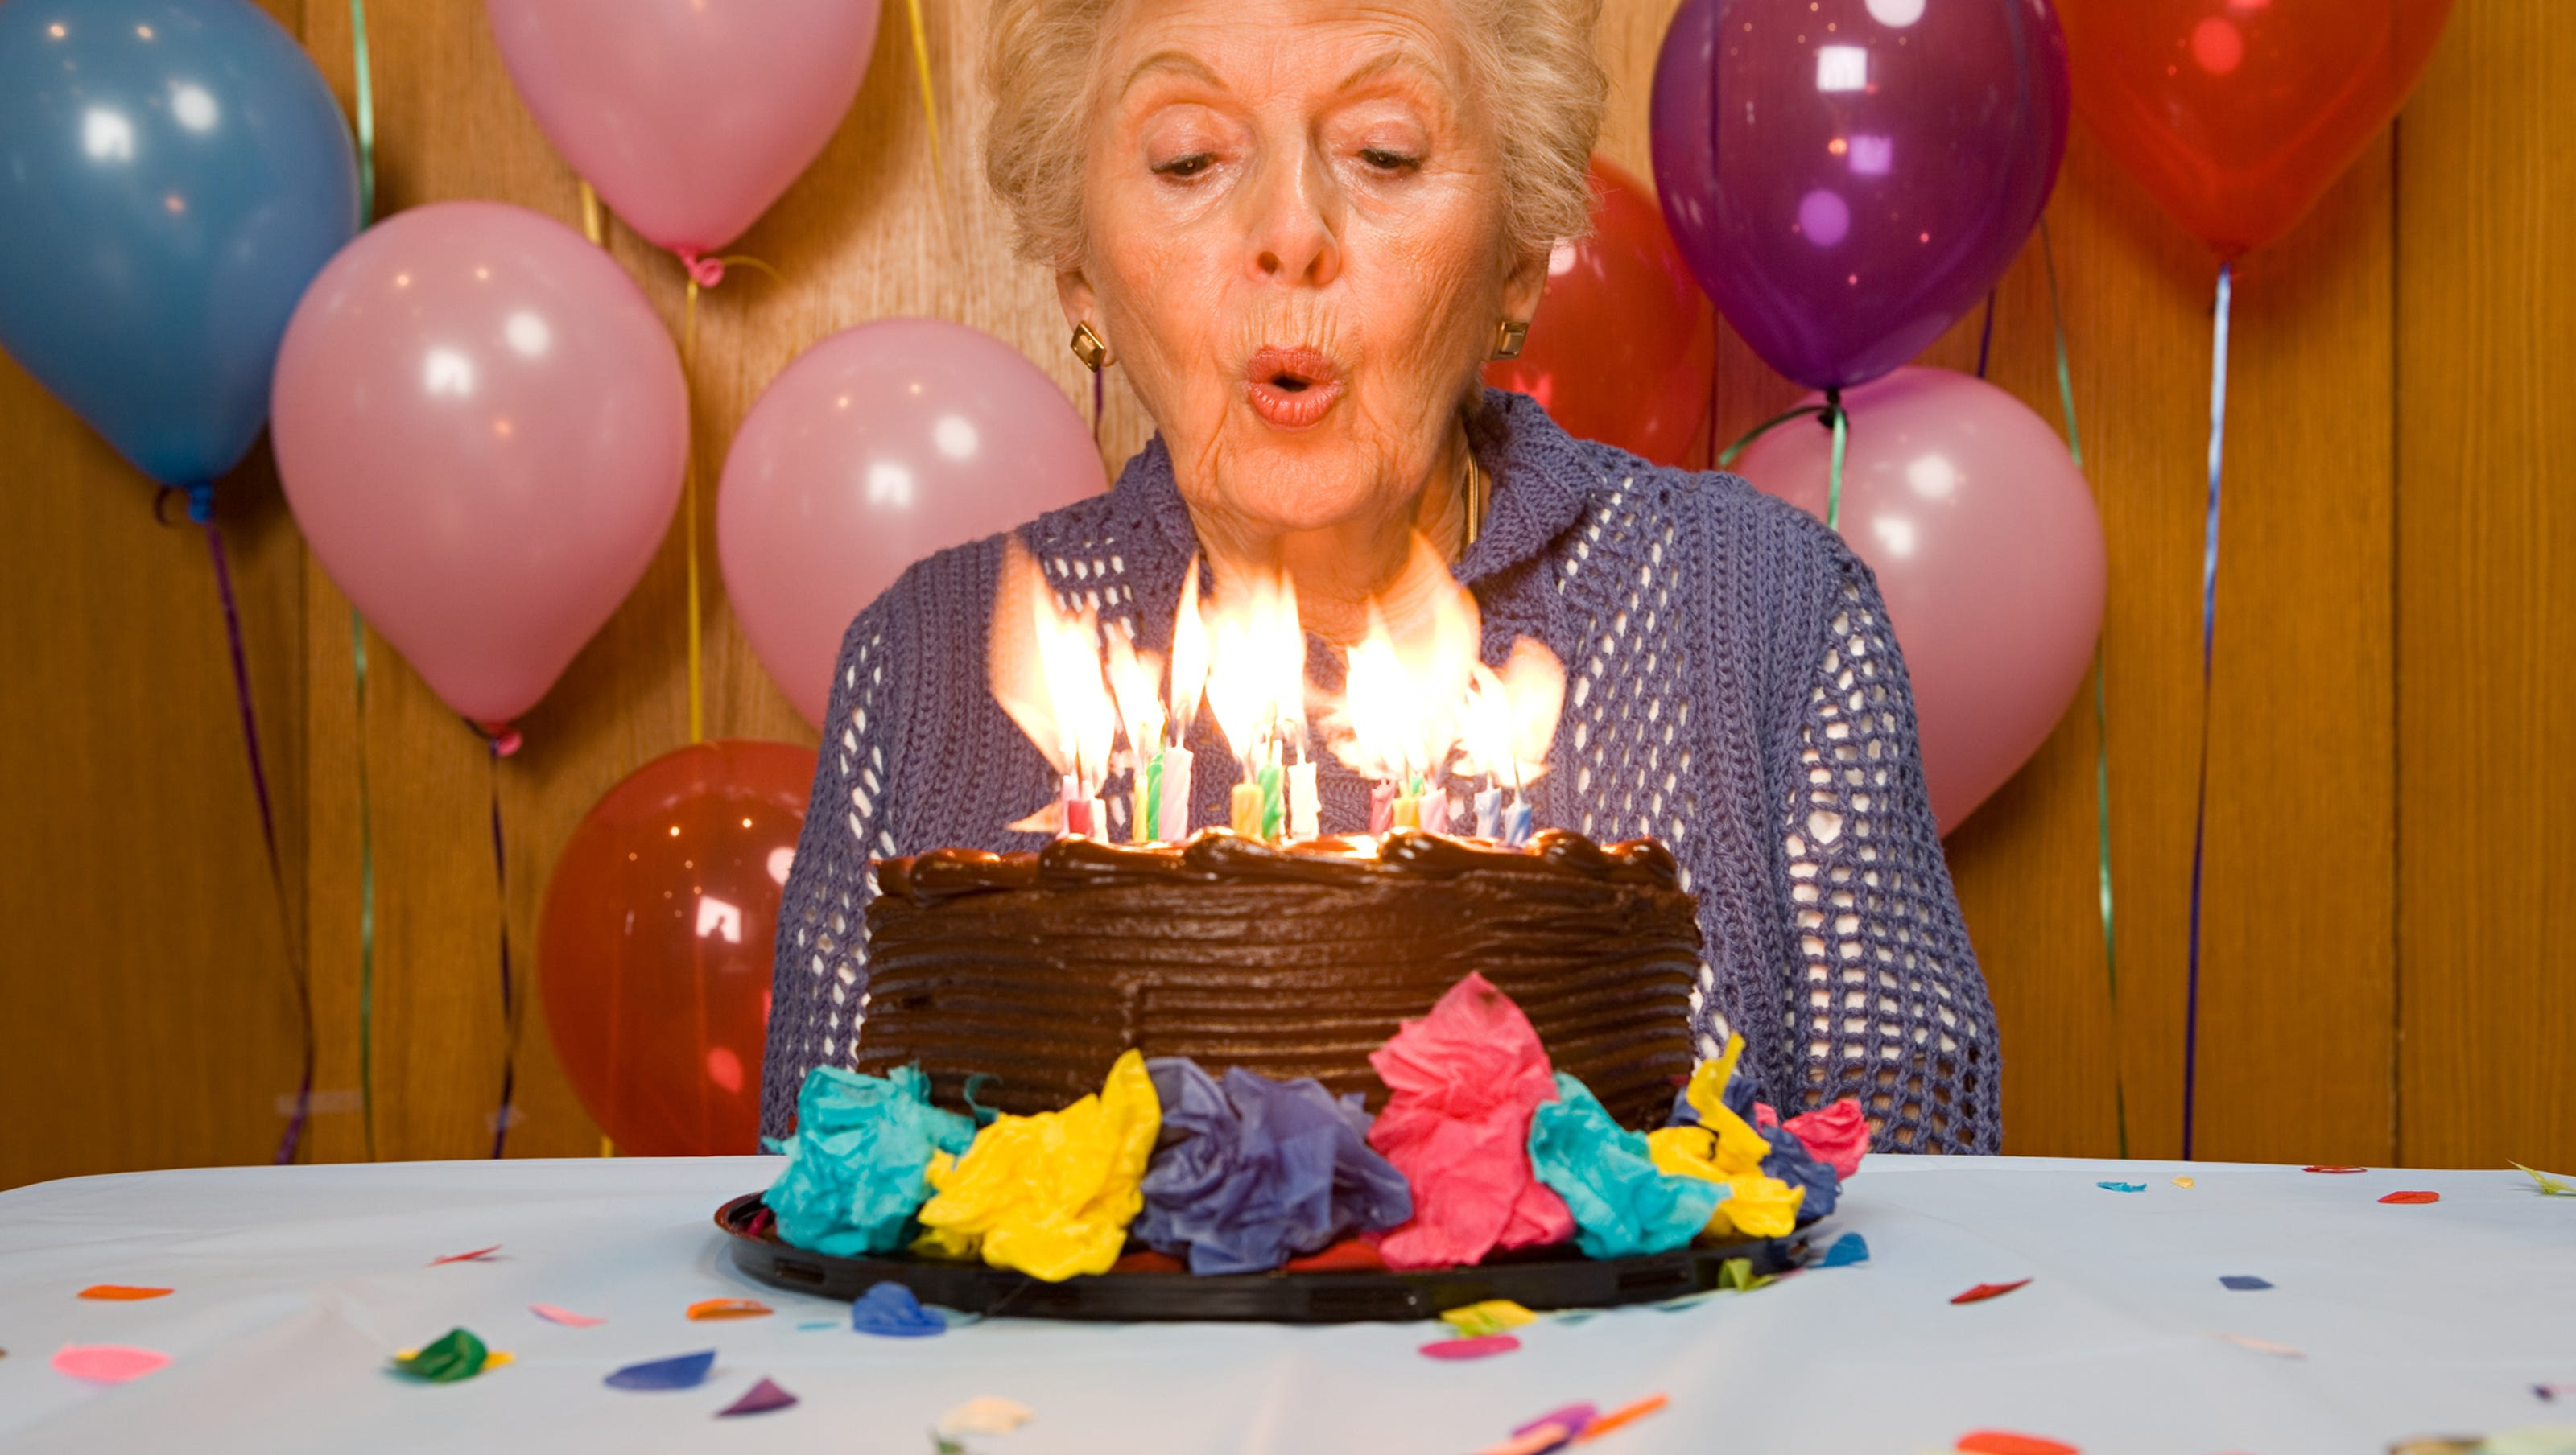 Blowing Out Birthday Candles Increases Bacteria On Cake 1 400